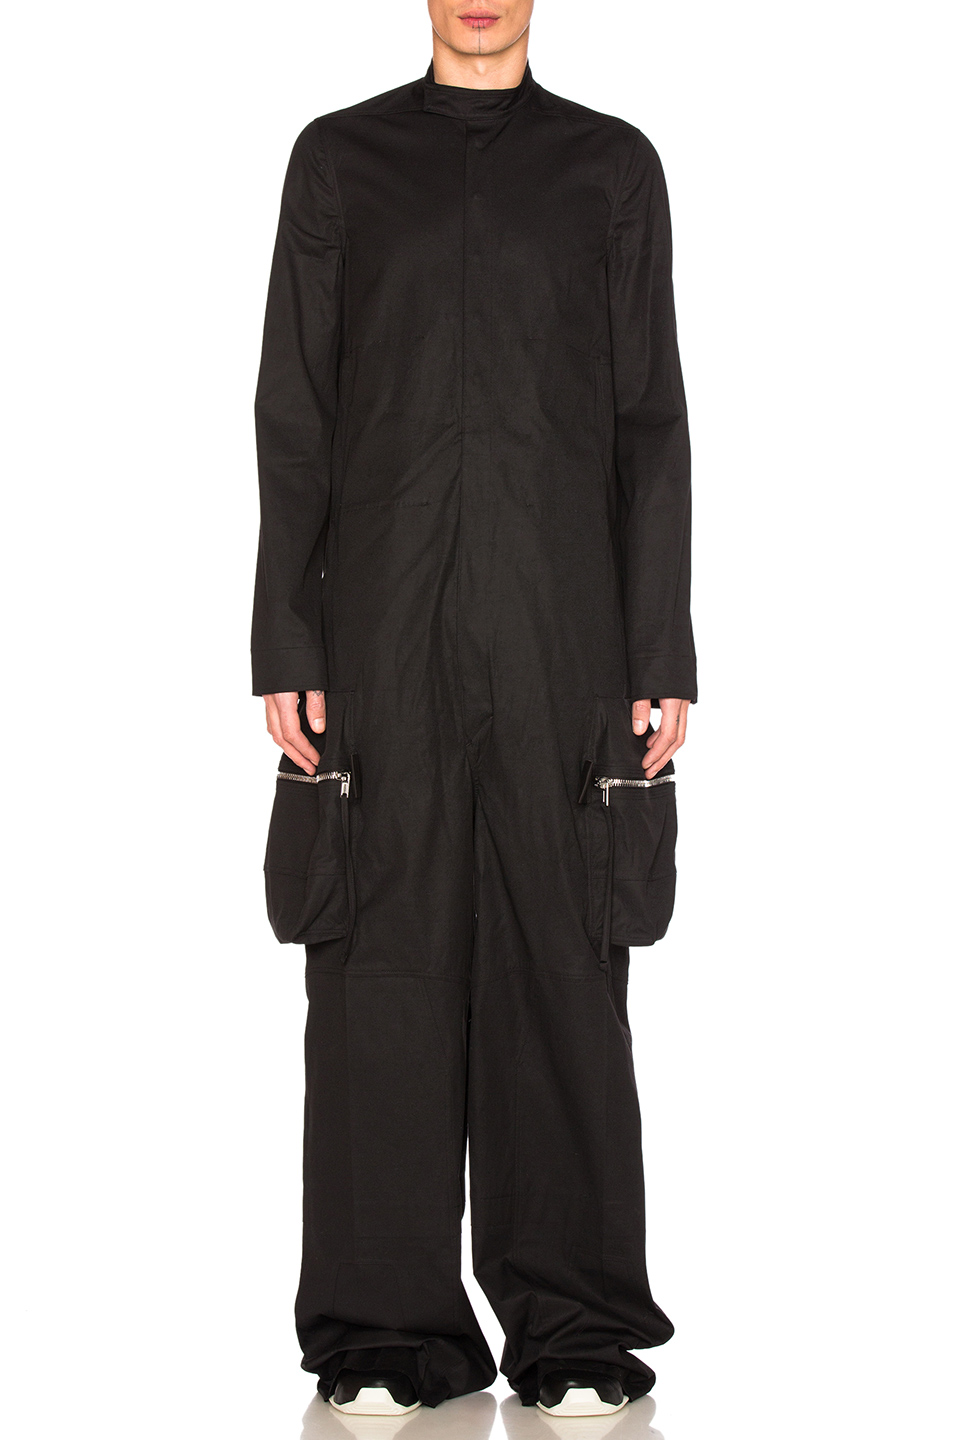 Rick Owens Long Sleeve Megacargo Bodybag in Black